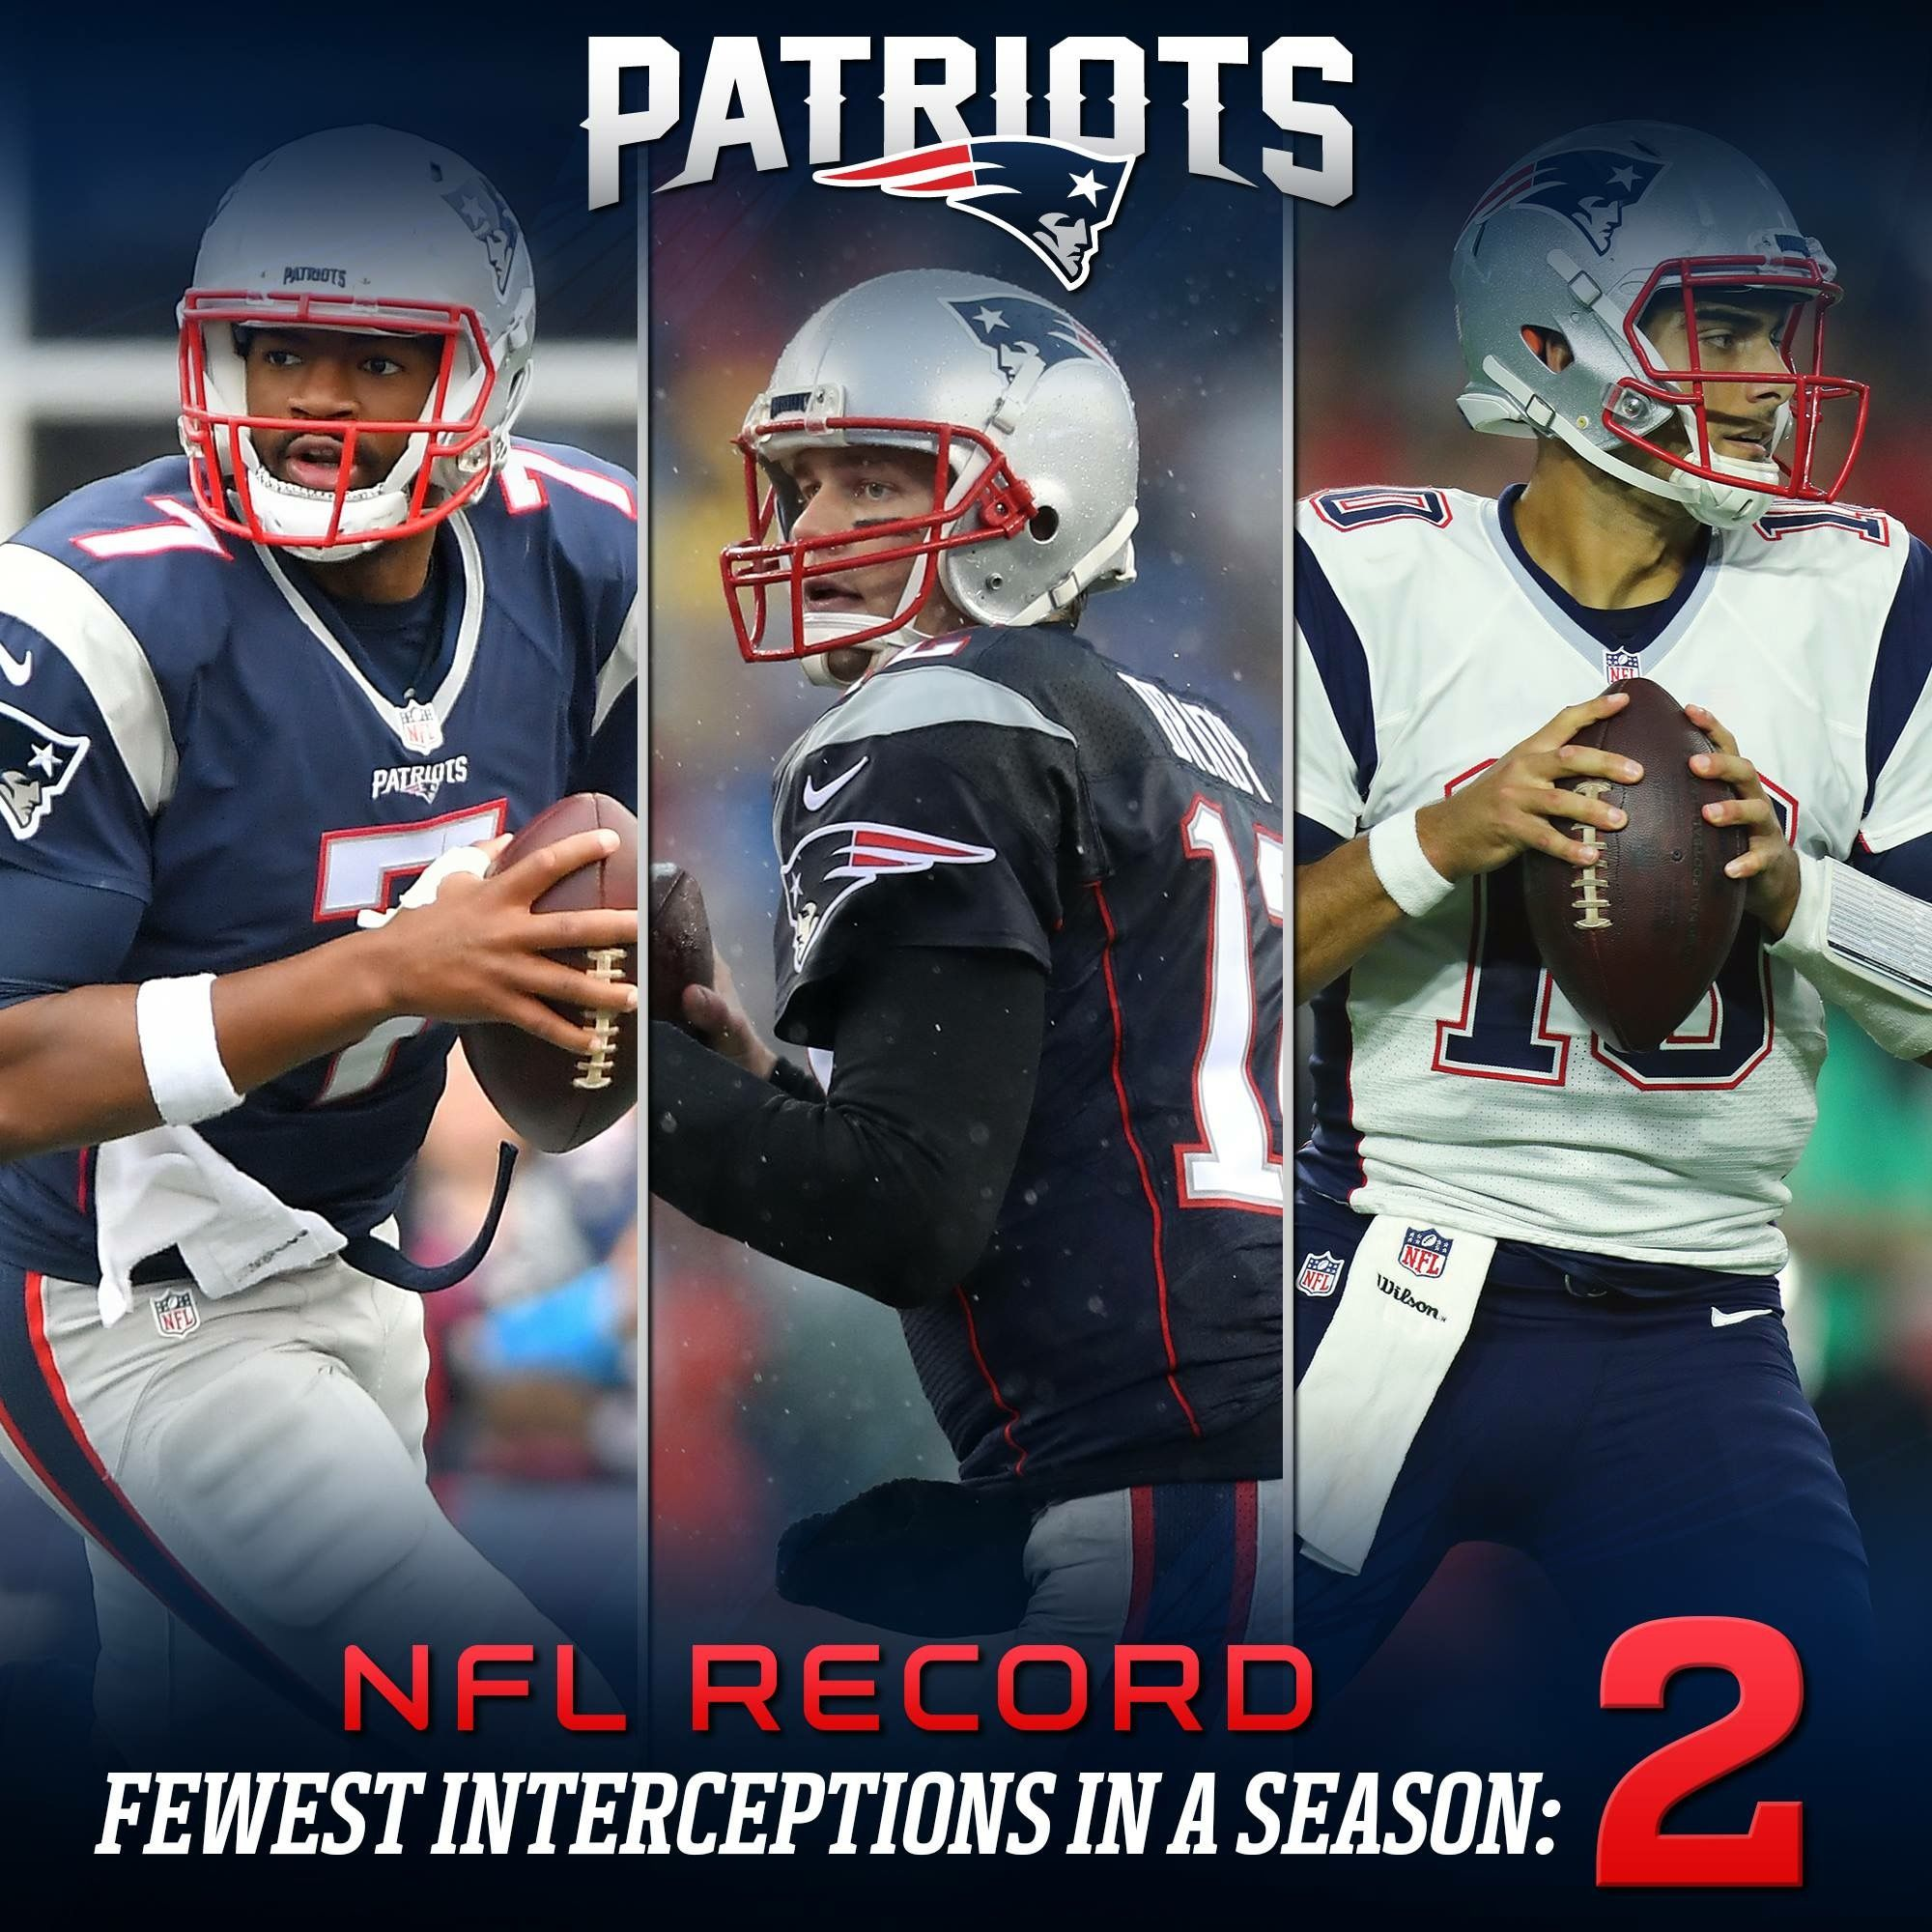 3 Quarterbacks 2 Interceptions Nfl Record Patriots